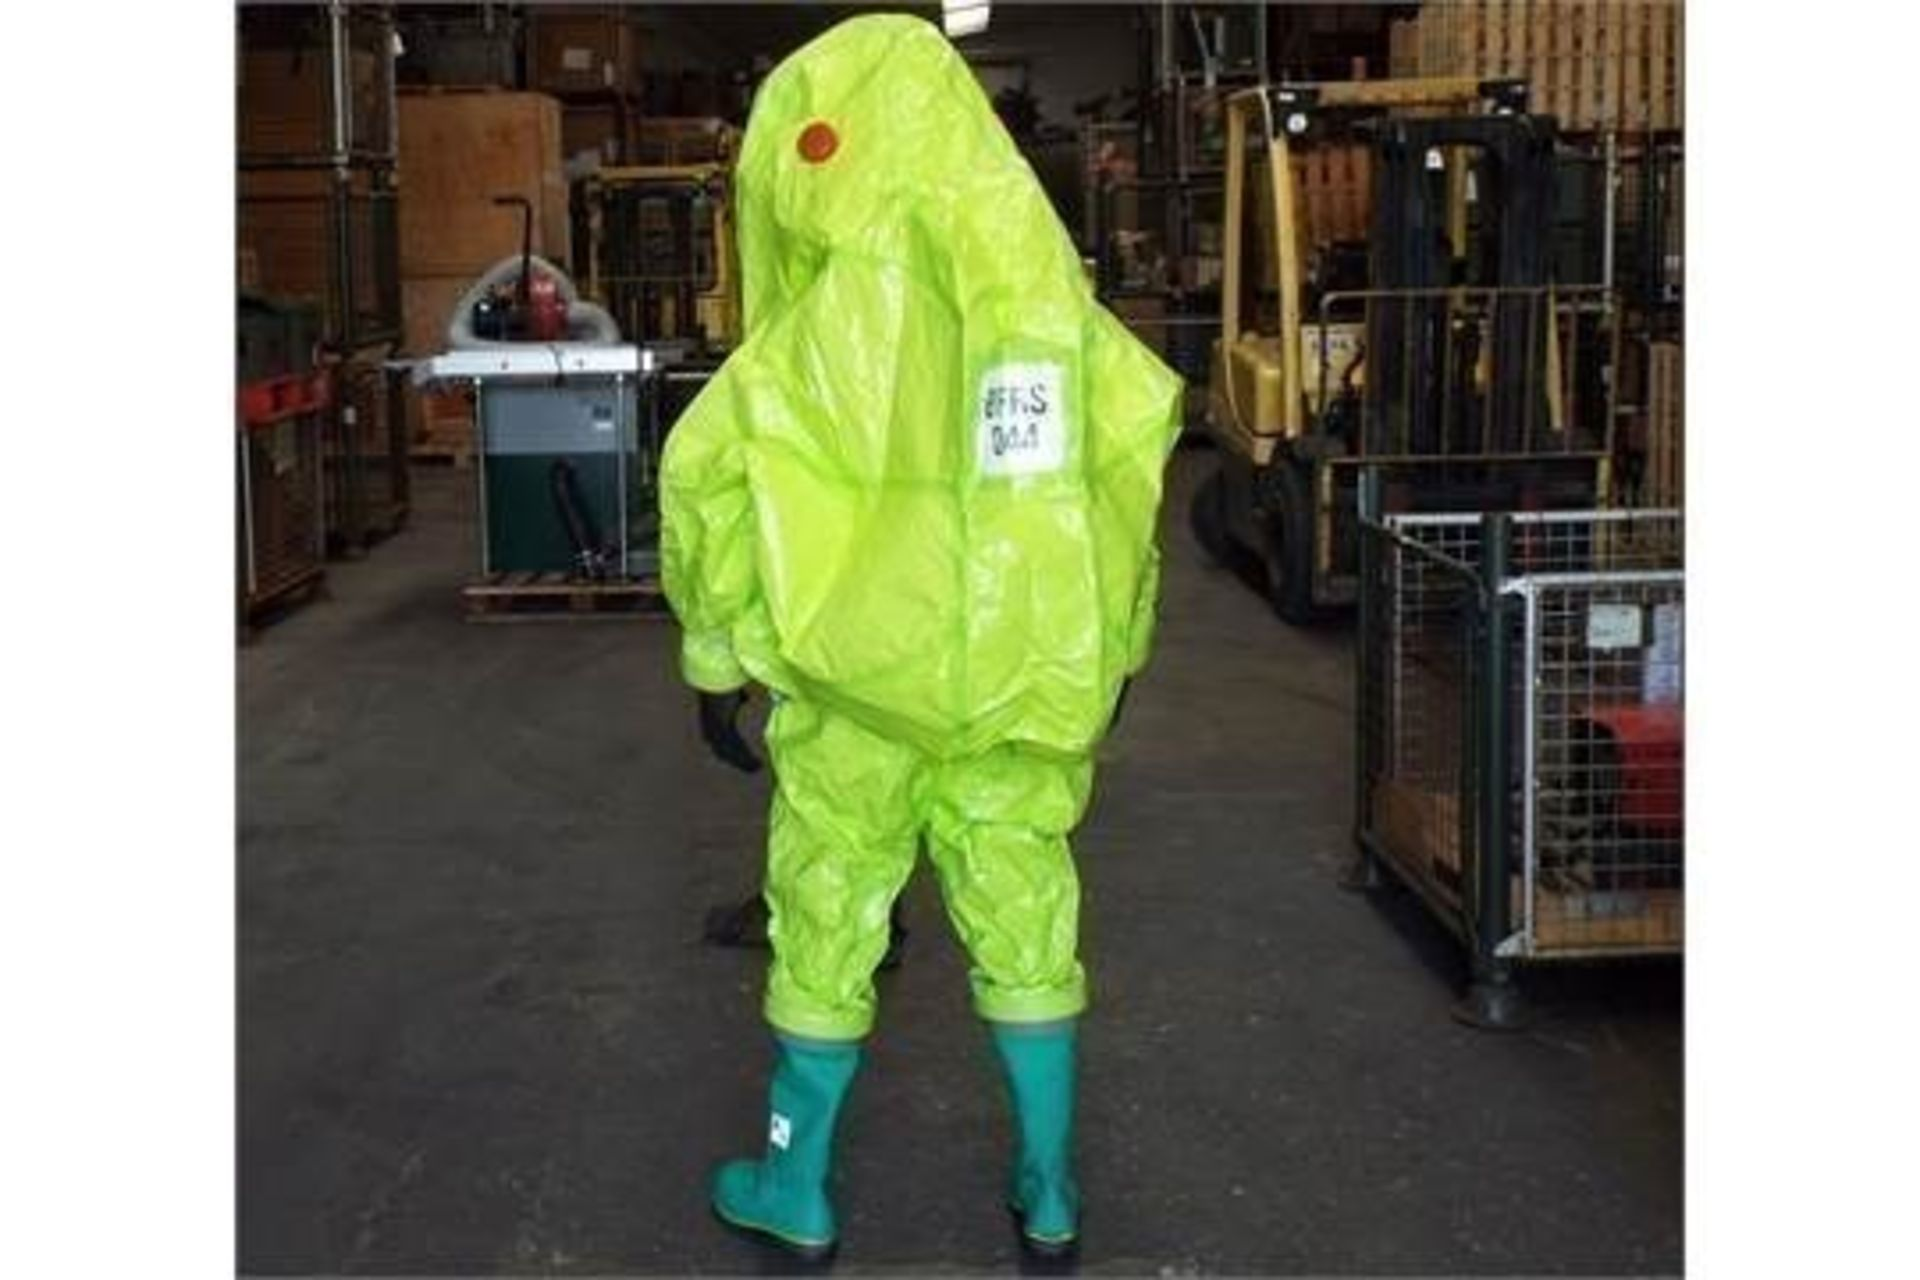 10 x Respirex Tychem TK Gas-Tight Hazmat Suit Type 1A with Attached Boots and Gloves - Image 3 of 10